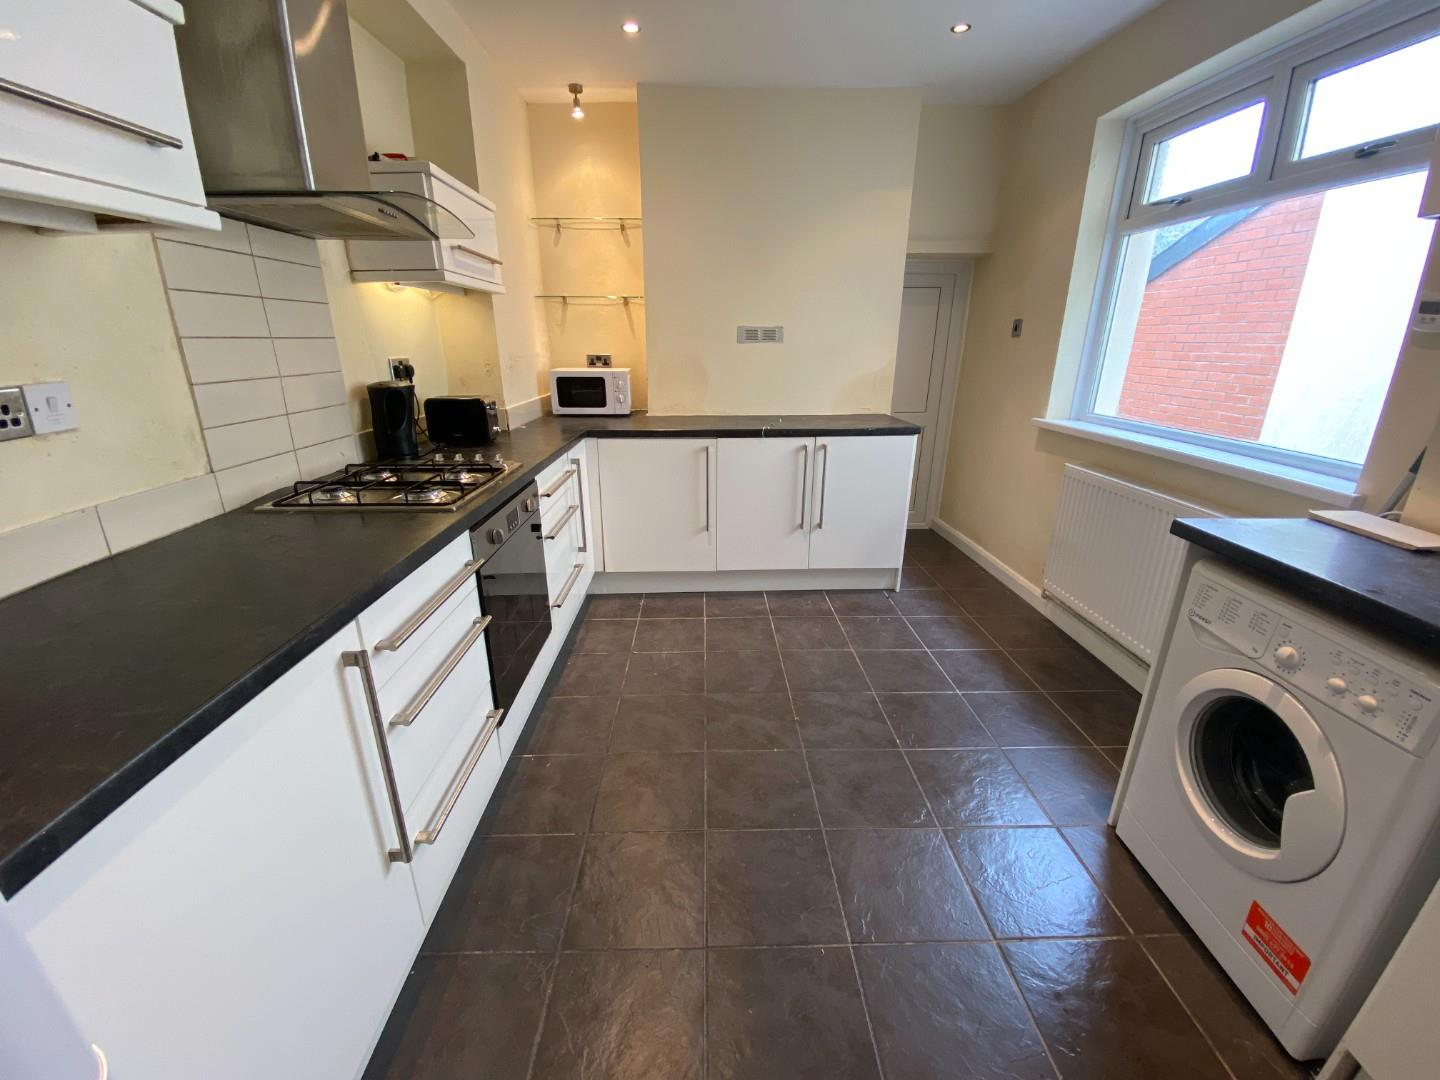 5 bed terraced house to rent in Amherst Street, Cardiff - Property Image 1